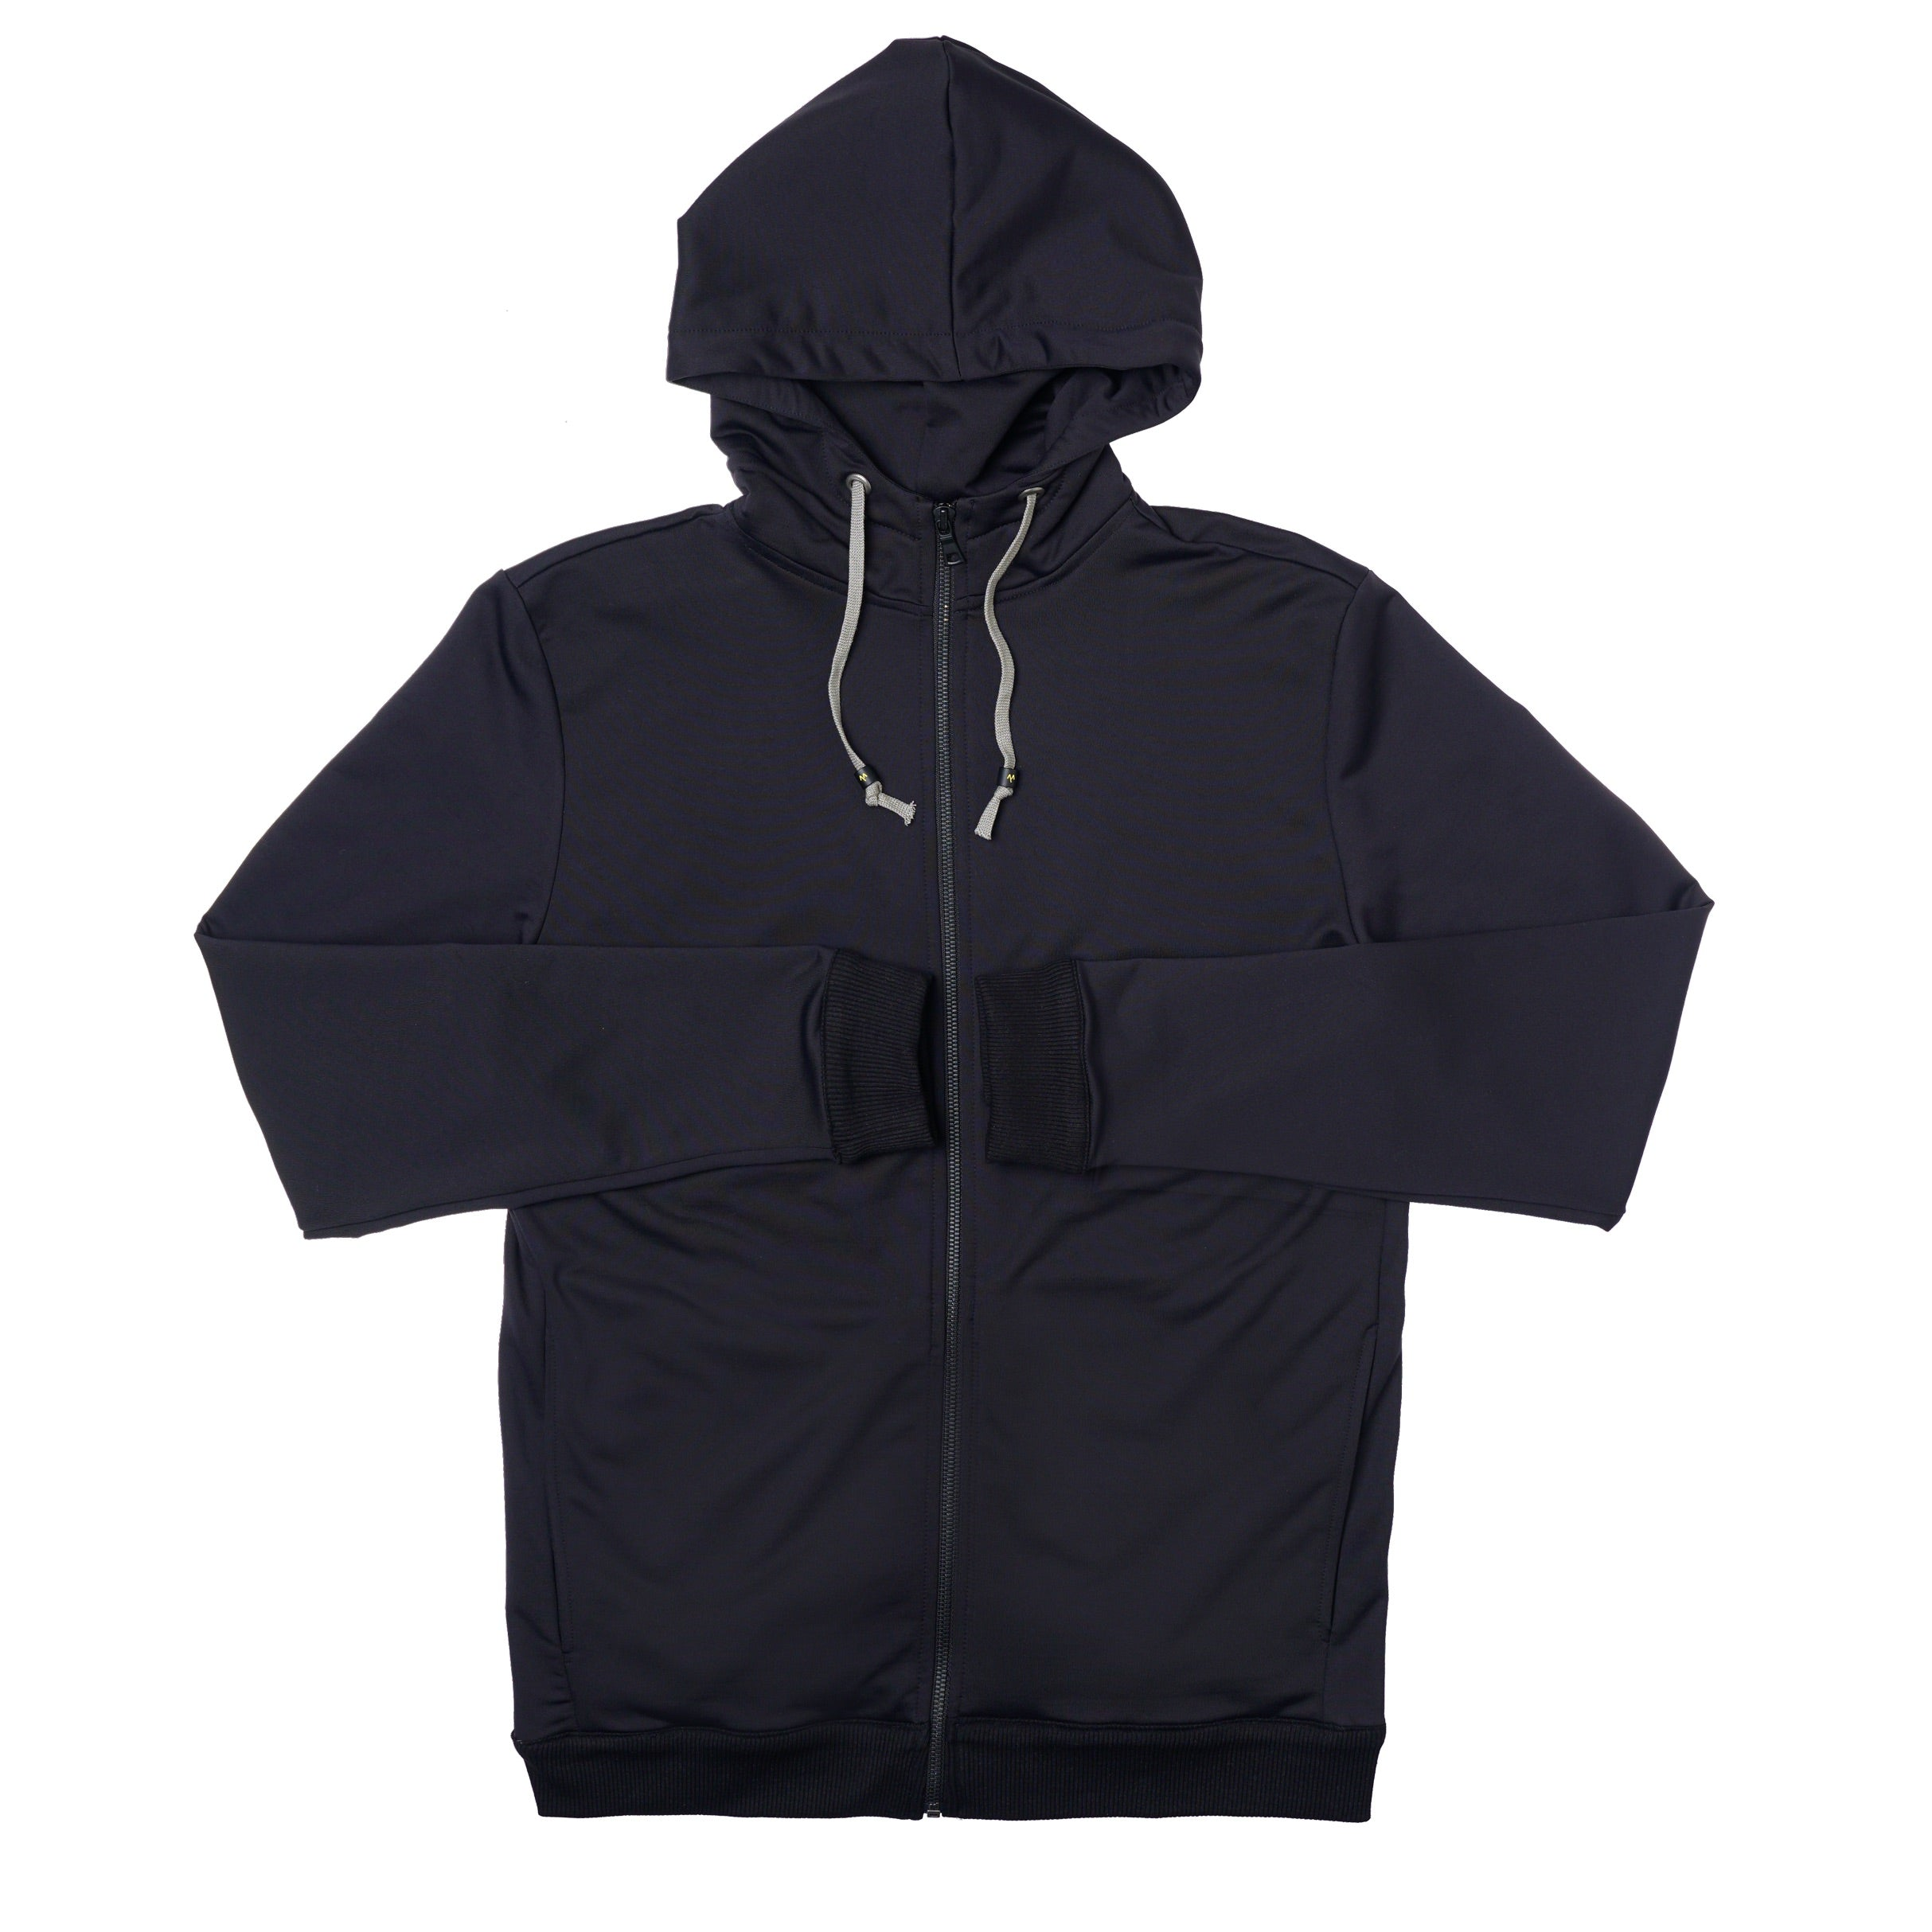 Panel Zip Up Hoodie in Tech Black - Mitchell Evan